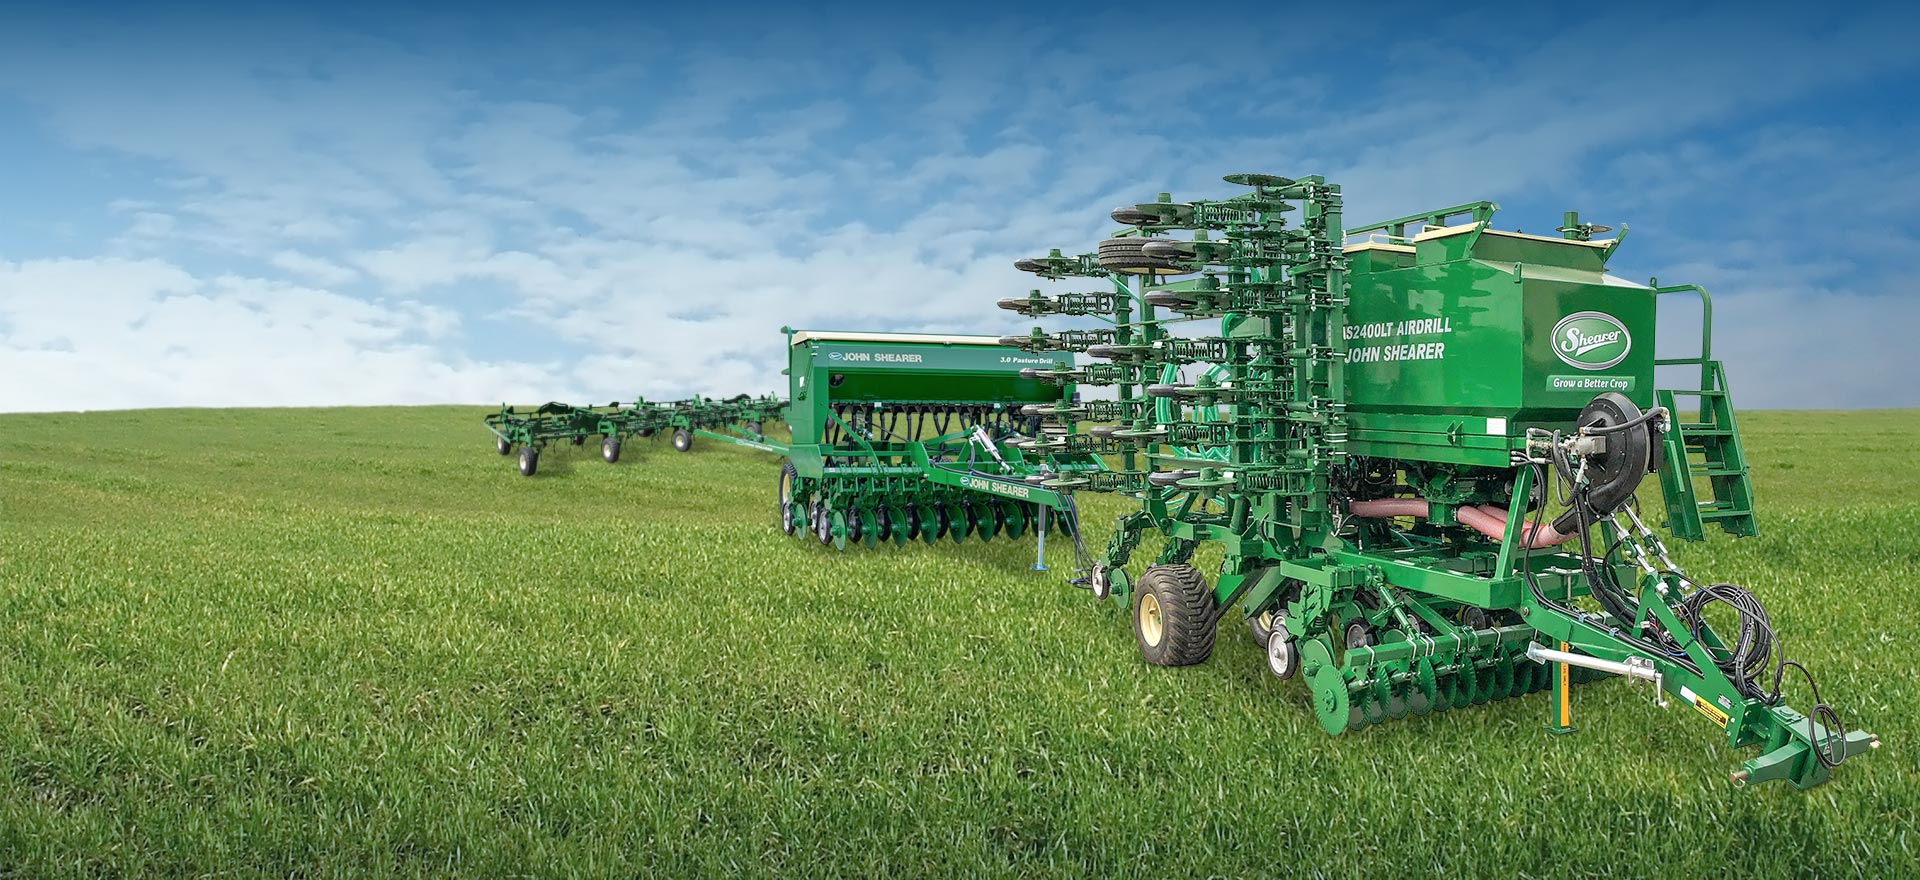 AS2400LT Airdrill, 3.0m Pasture Drill and Mk 3 Universal Seeder Bar in a green field